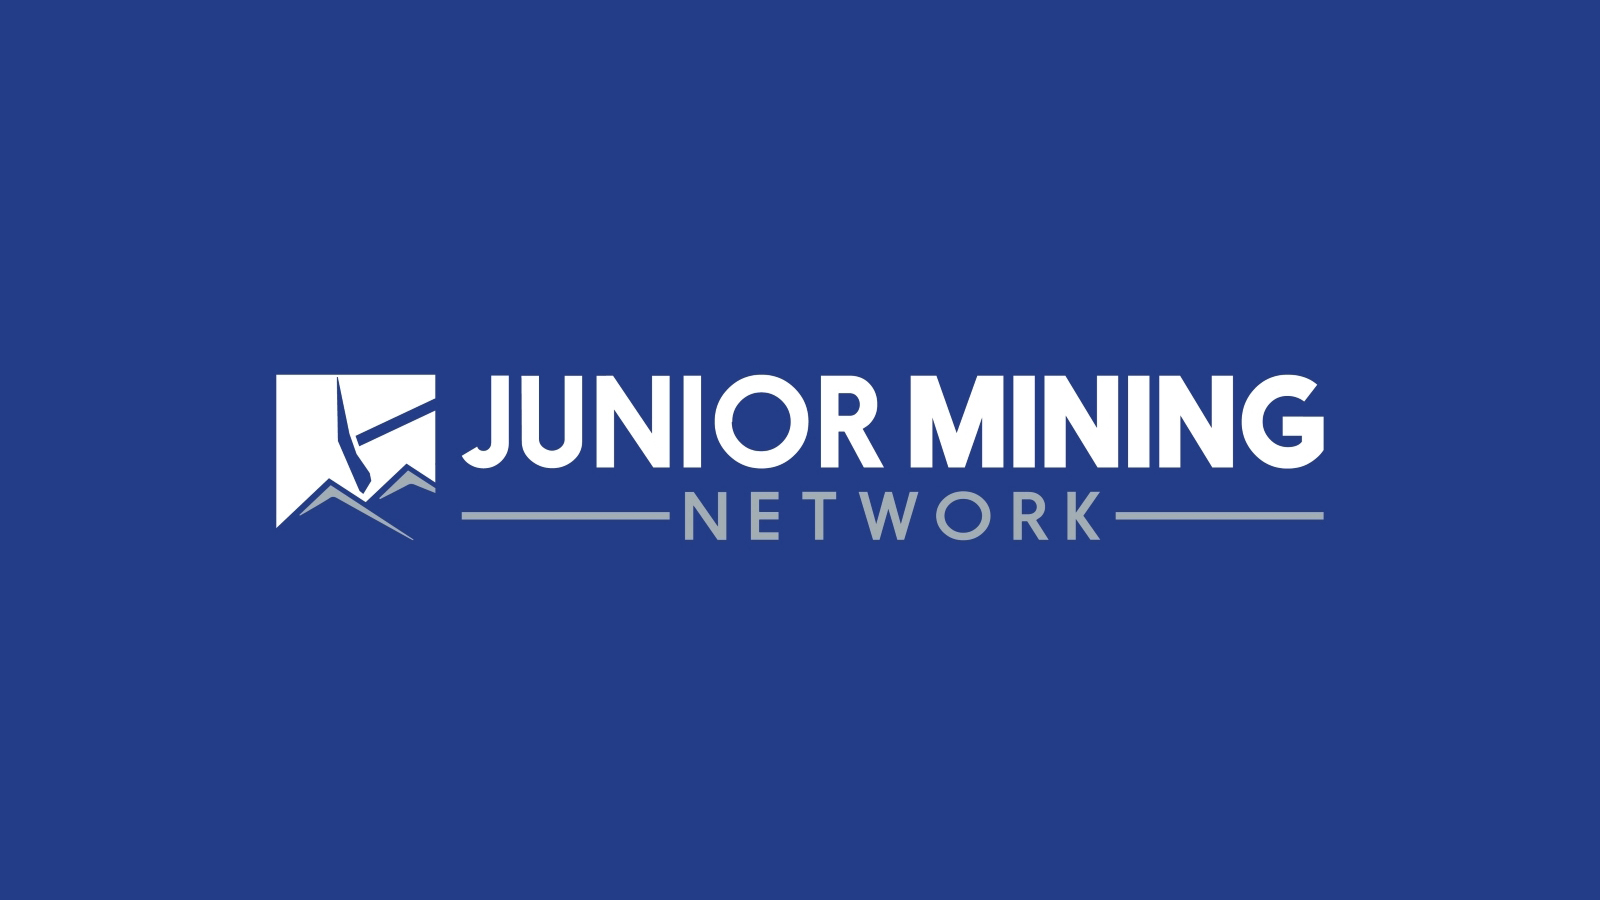 Cannot view this image? Visit: https://www.juniorminingnetwork.com/images/news/newsfile/32391_rsz_palami1.jpg